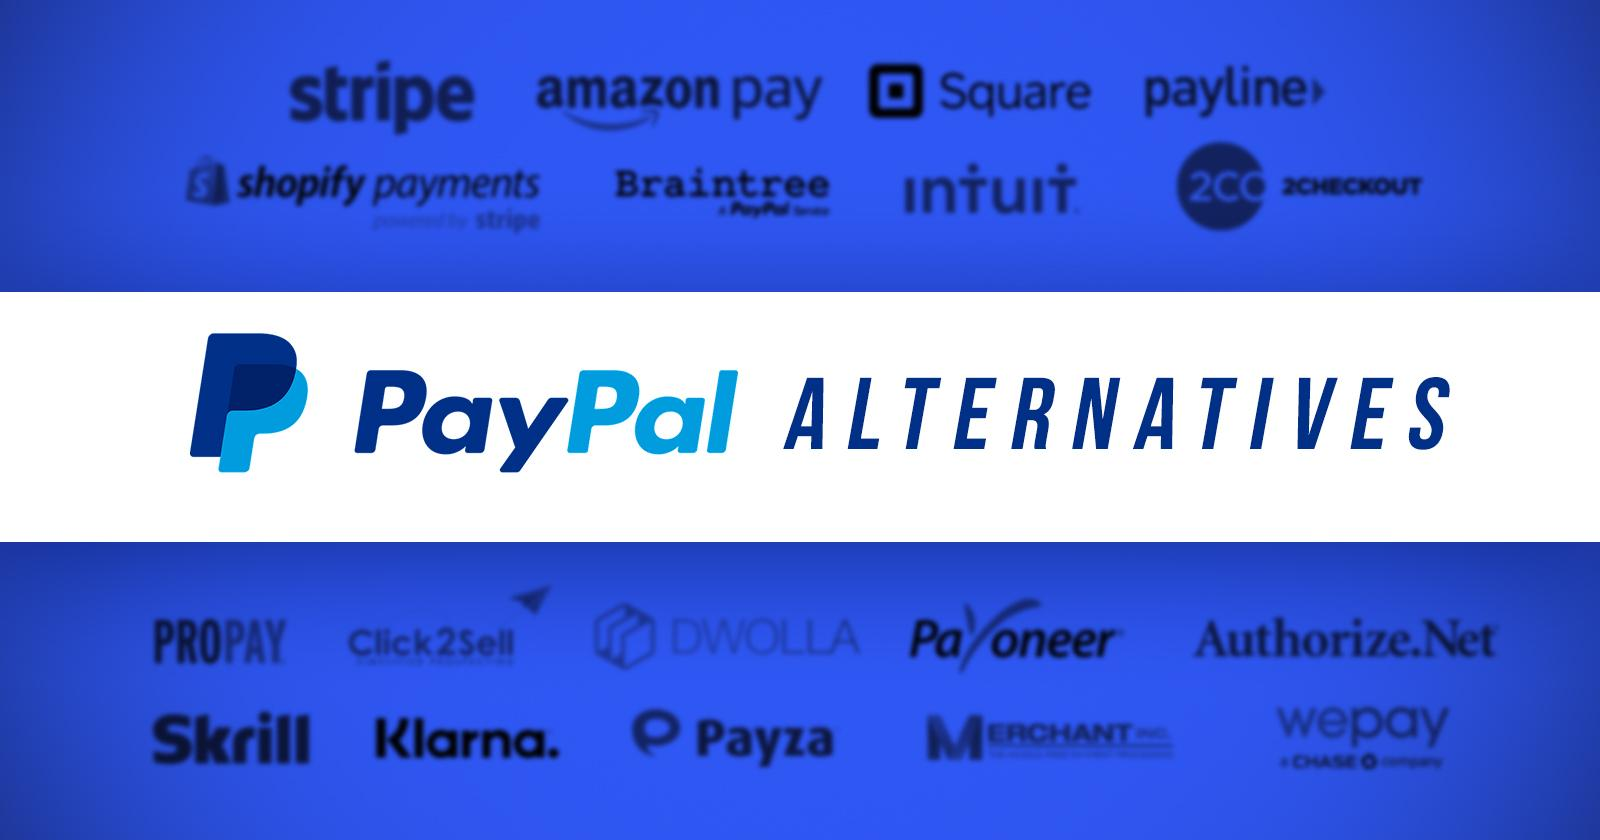 3 Paypal Alternatives You Can Use To Send And Receive Money In Ghana